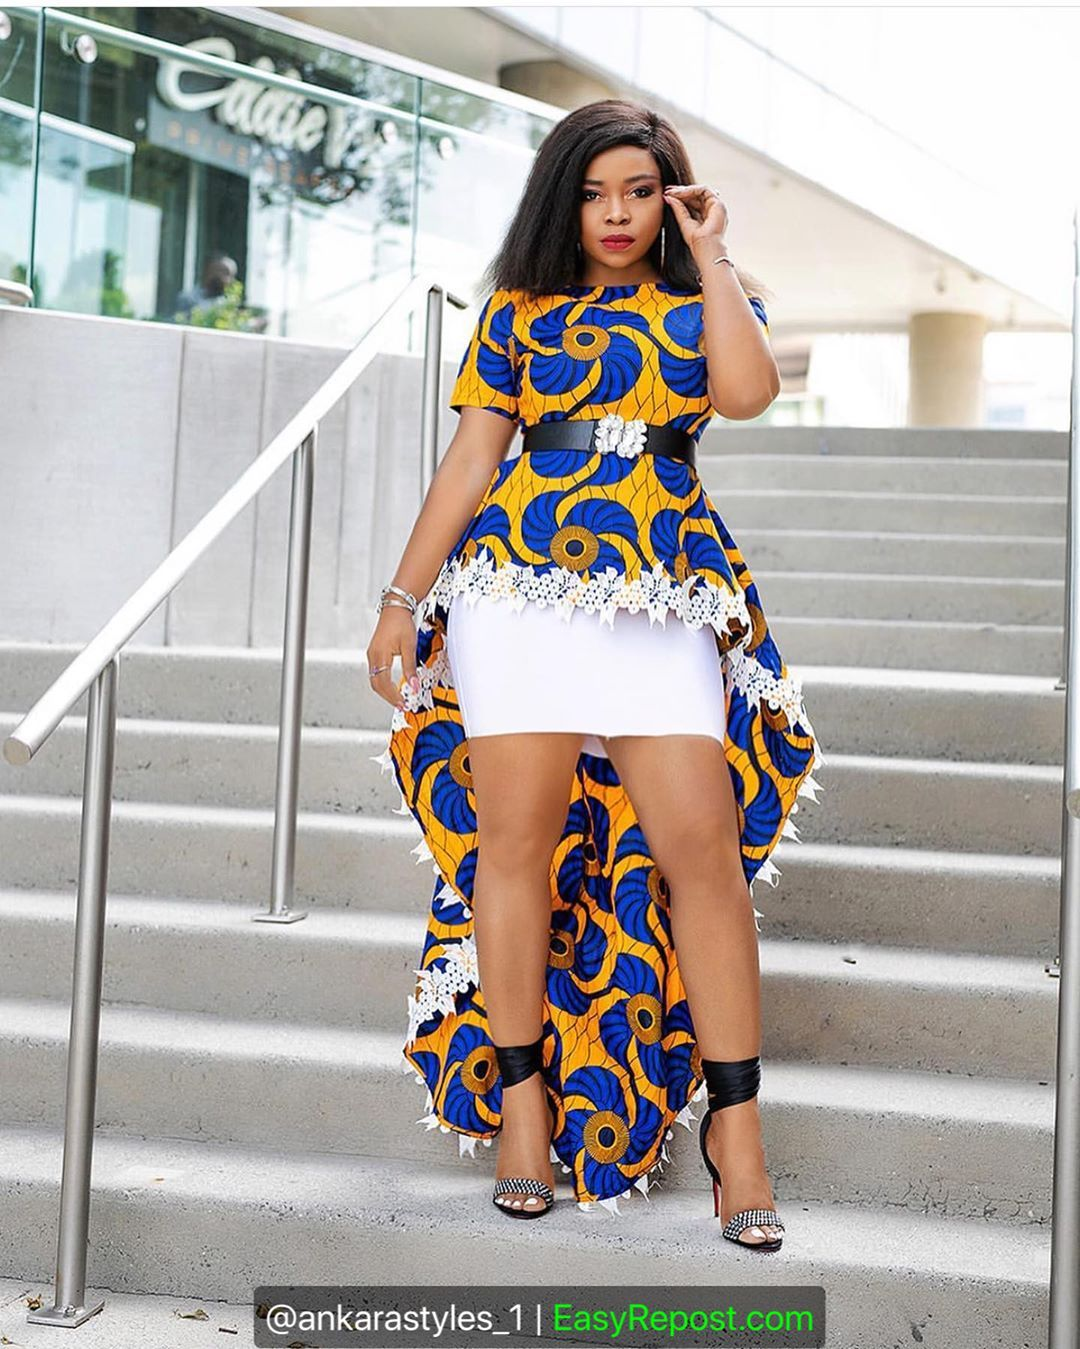 42 mentions J'aime, 0 commentaires - Flawsome (@flawsome.ankara) sur Instagram: Reposted using @EasyRepost @stylewithlolaa #ankarastyles_1 by @ankarastyles_1 #africandressstyles